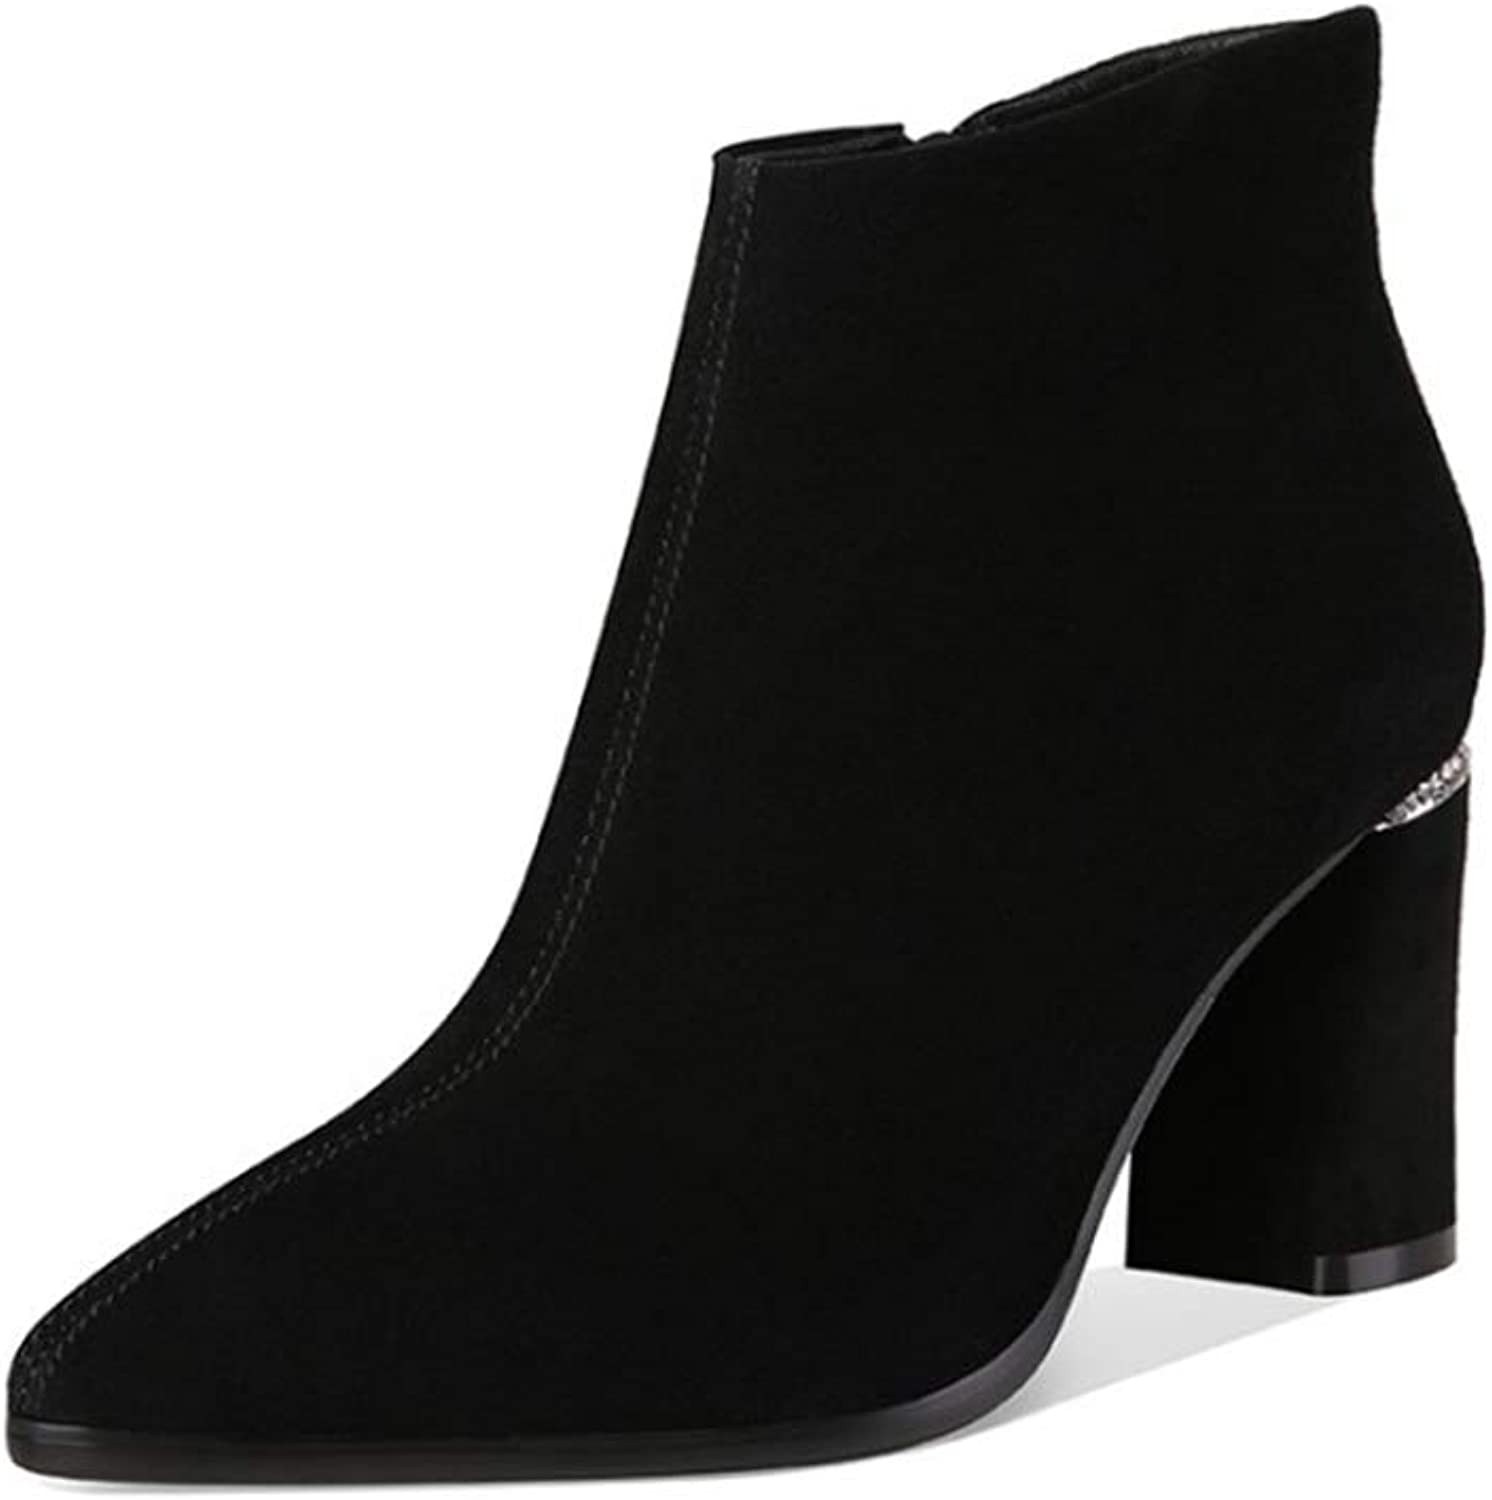 Women's Booties, Suede Fall Winter Boots Chunky Heel Round Toe Ankle Boots Velvet High Heel Pointed Martin Boots (color   Black, Size   38)